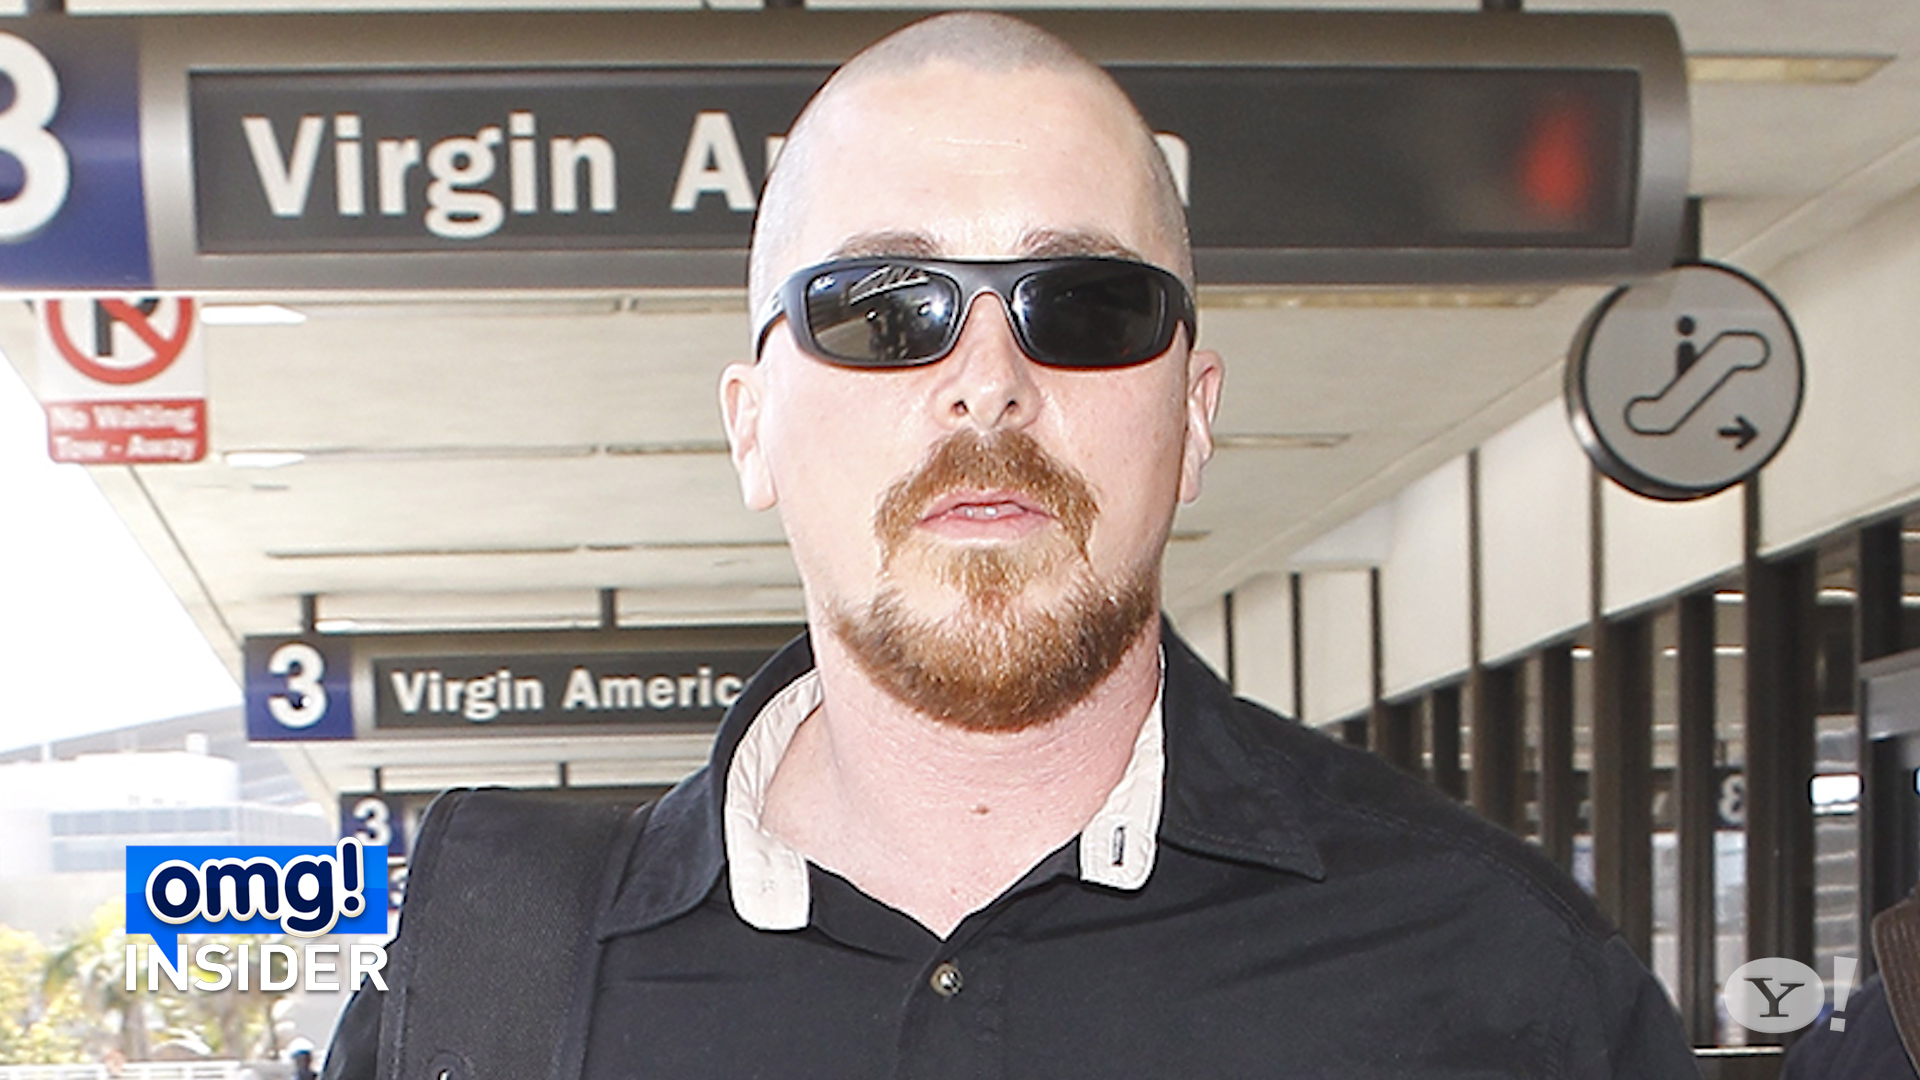 Christian Bale Is Barely Recognizable With New Bald  'Do